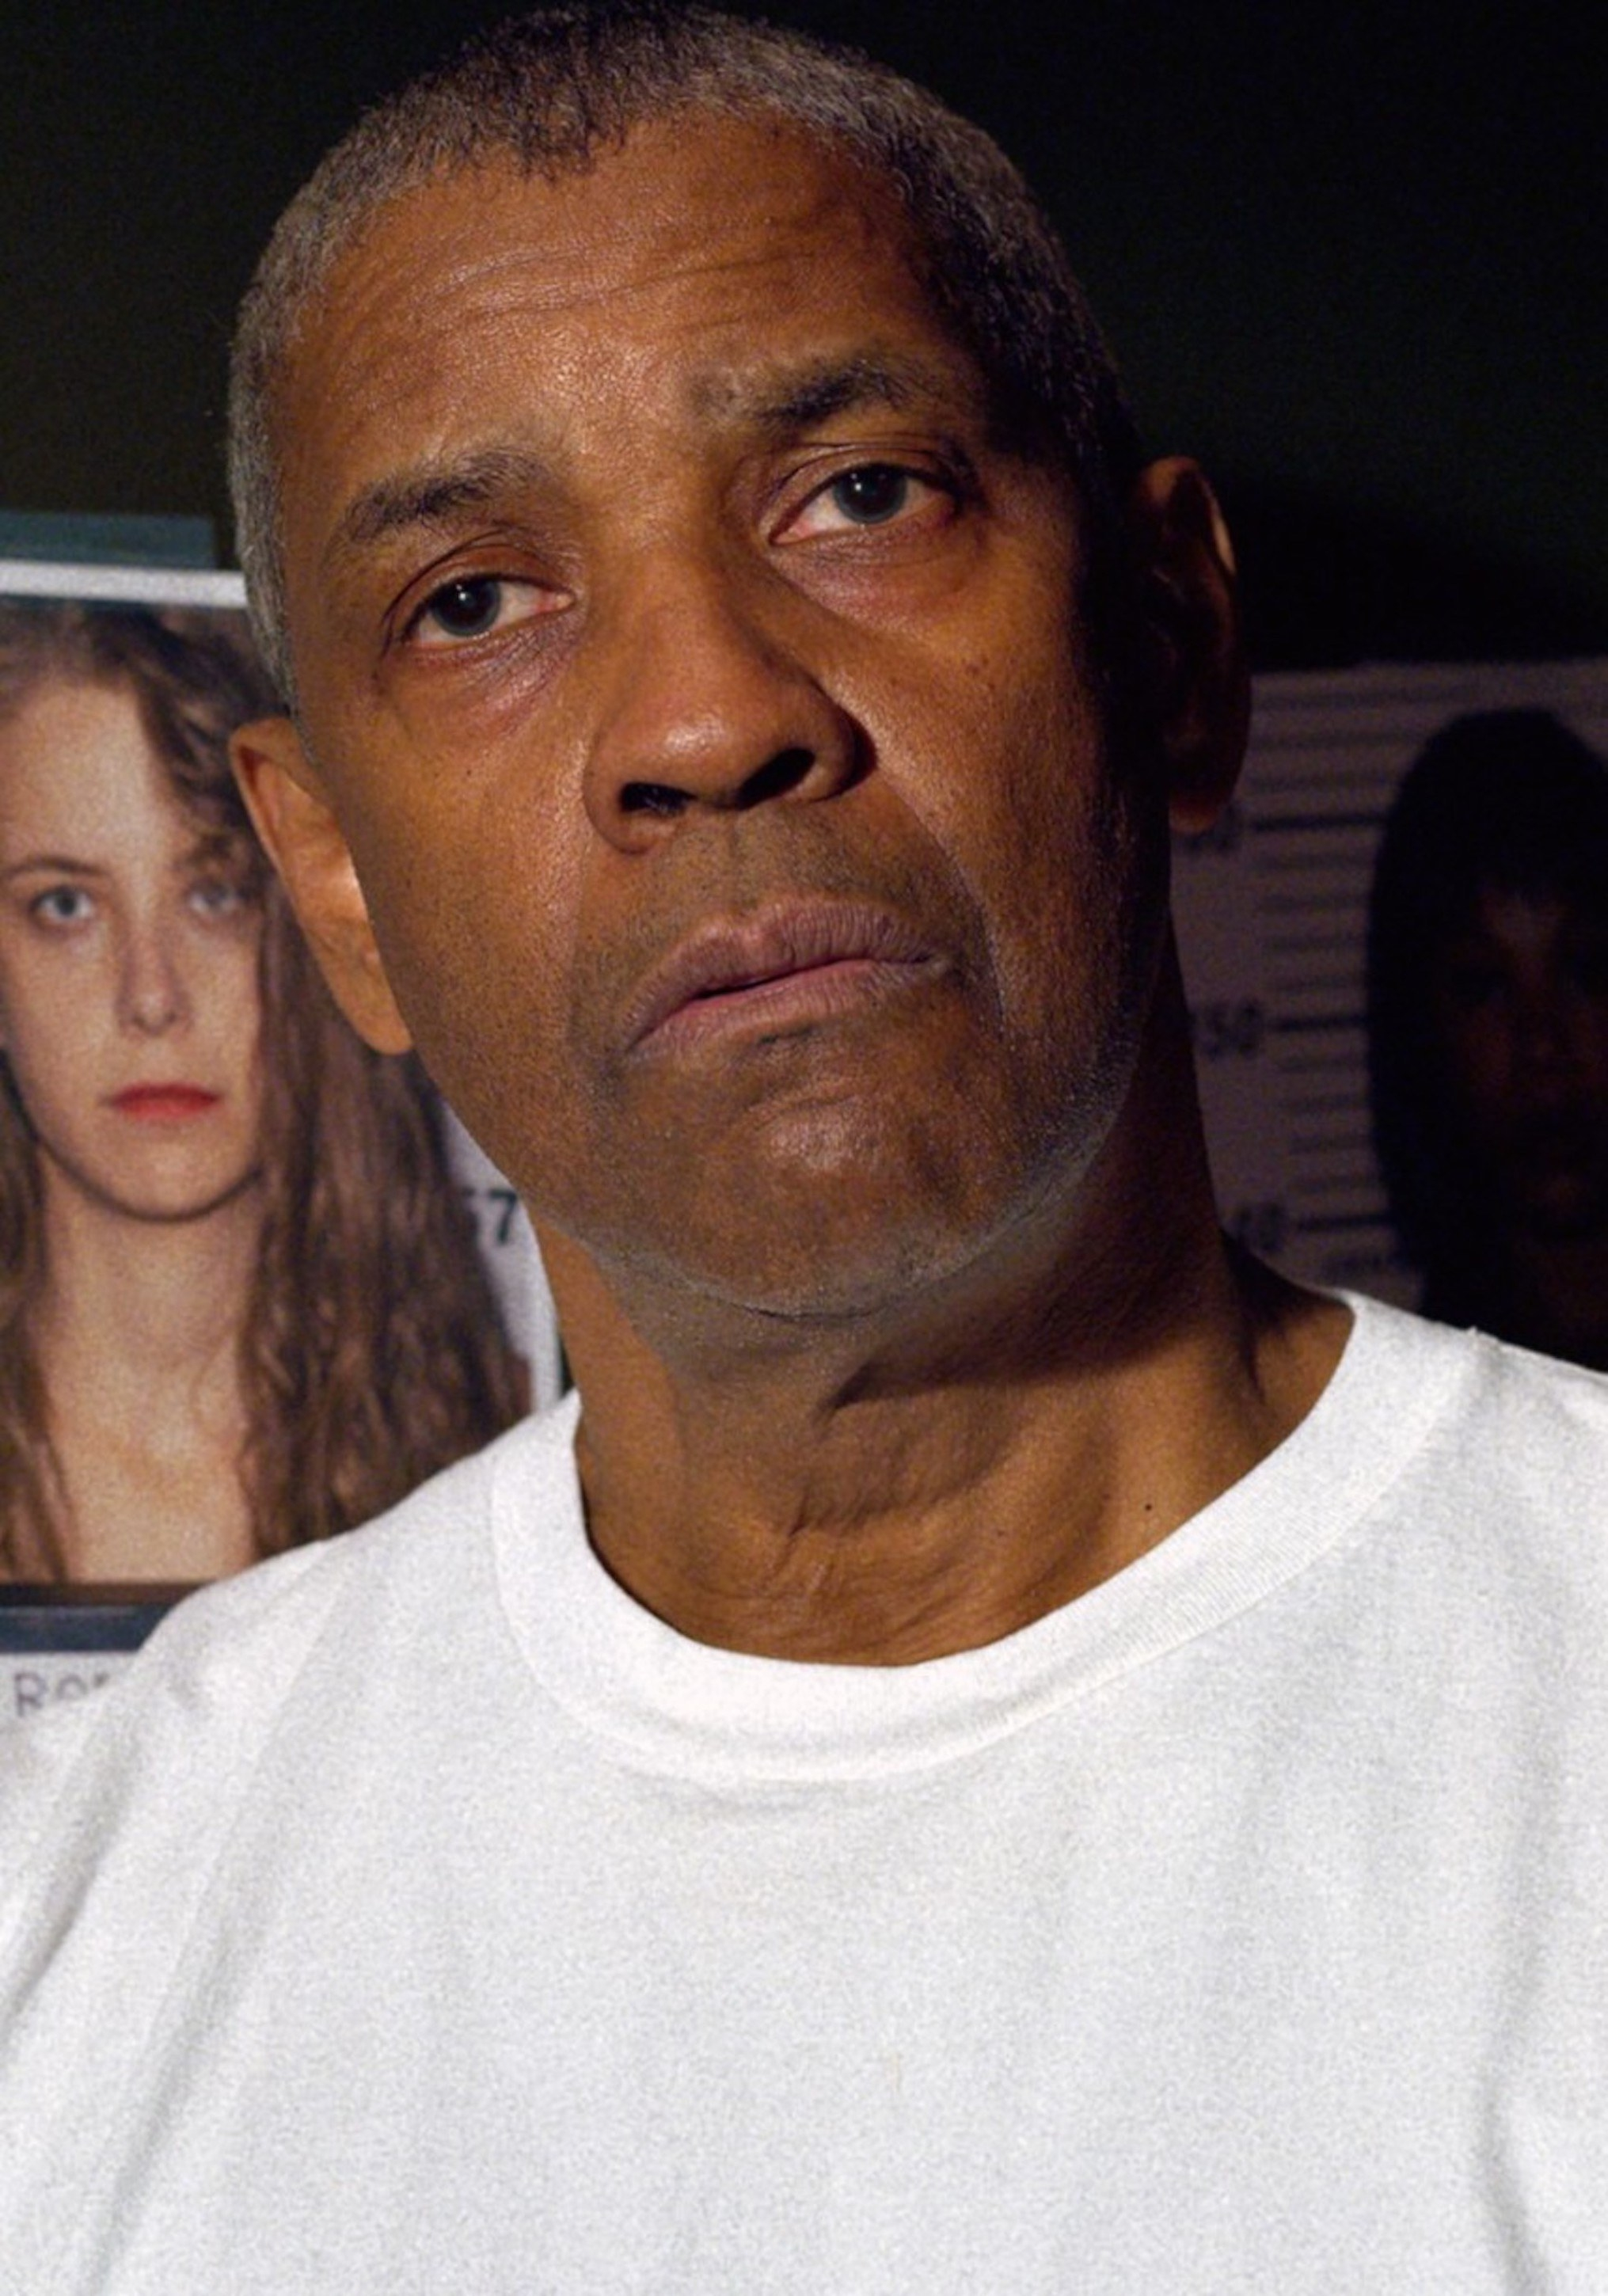 Denzel Washington wearing a white t-shirt while standing in front of images of potential suspects